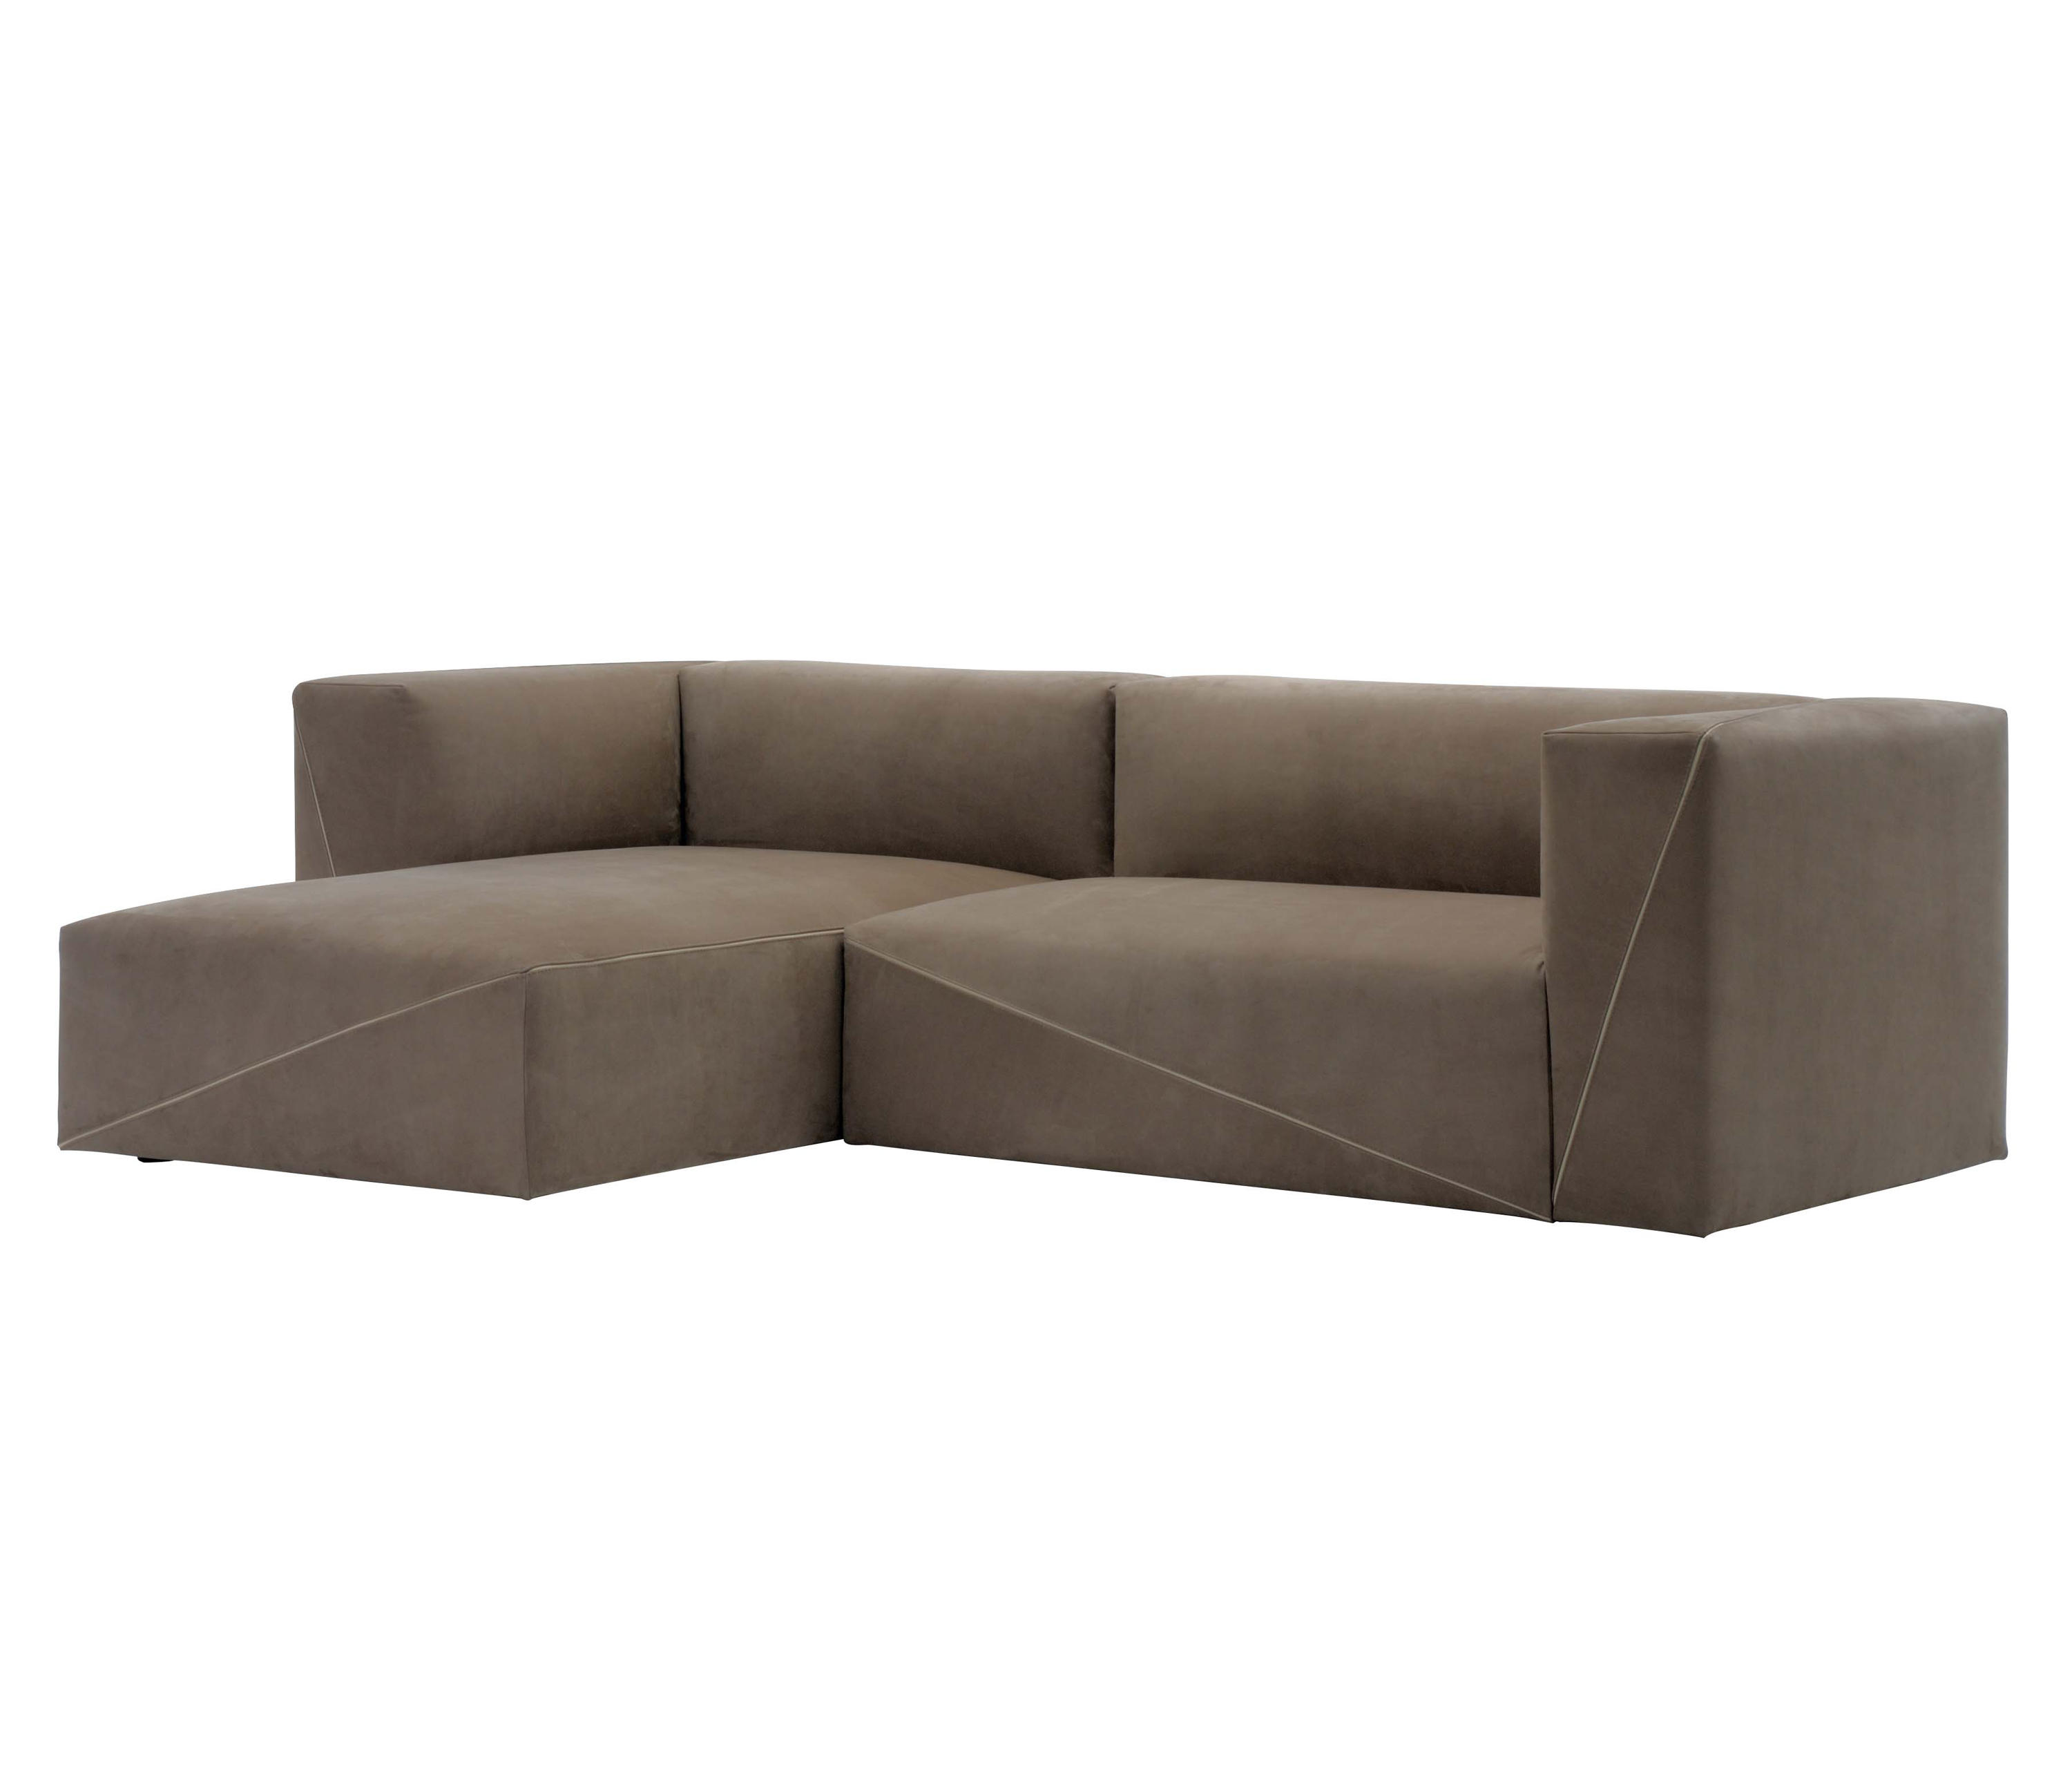 Diagonal chaise longue sectional sofa modular sofa for Sofa chaise longue